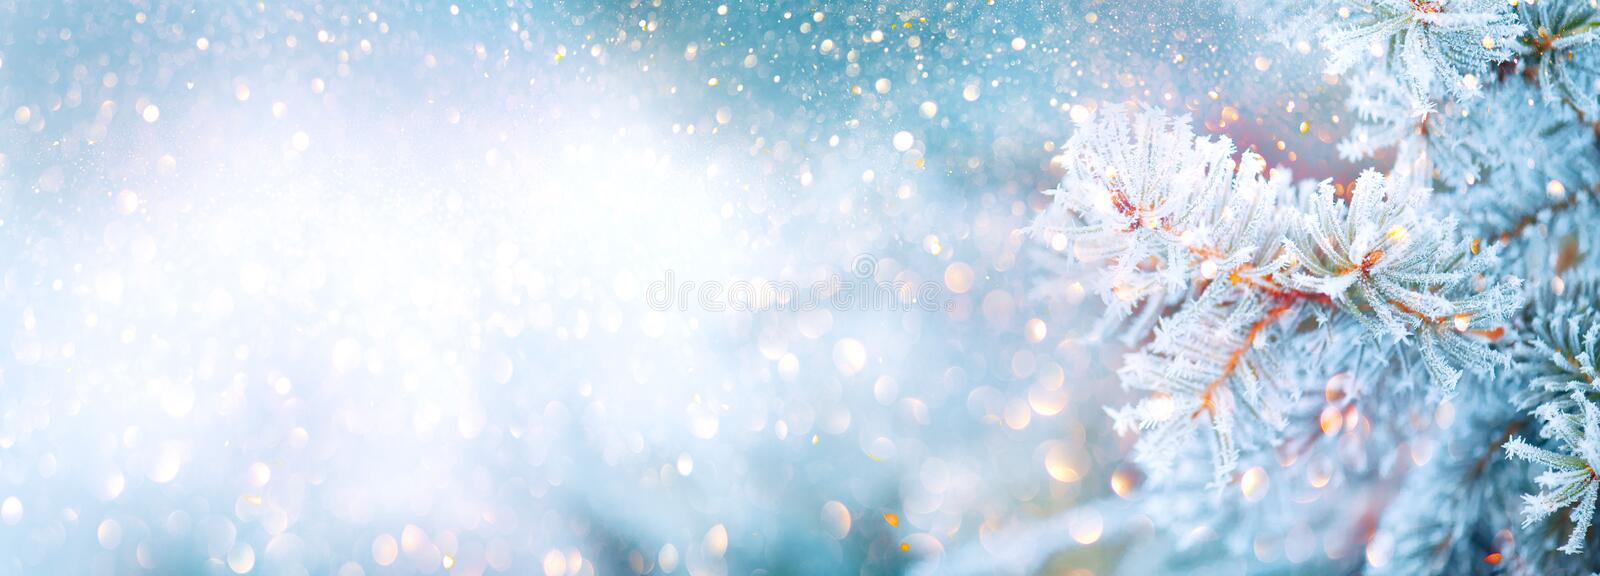 Christmas winter blurred background. Xmas tree with snow decorated with garland lights, holiday festive background. Widescreen backdrop. New year Winter art stock photo